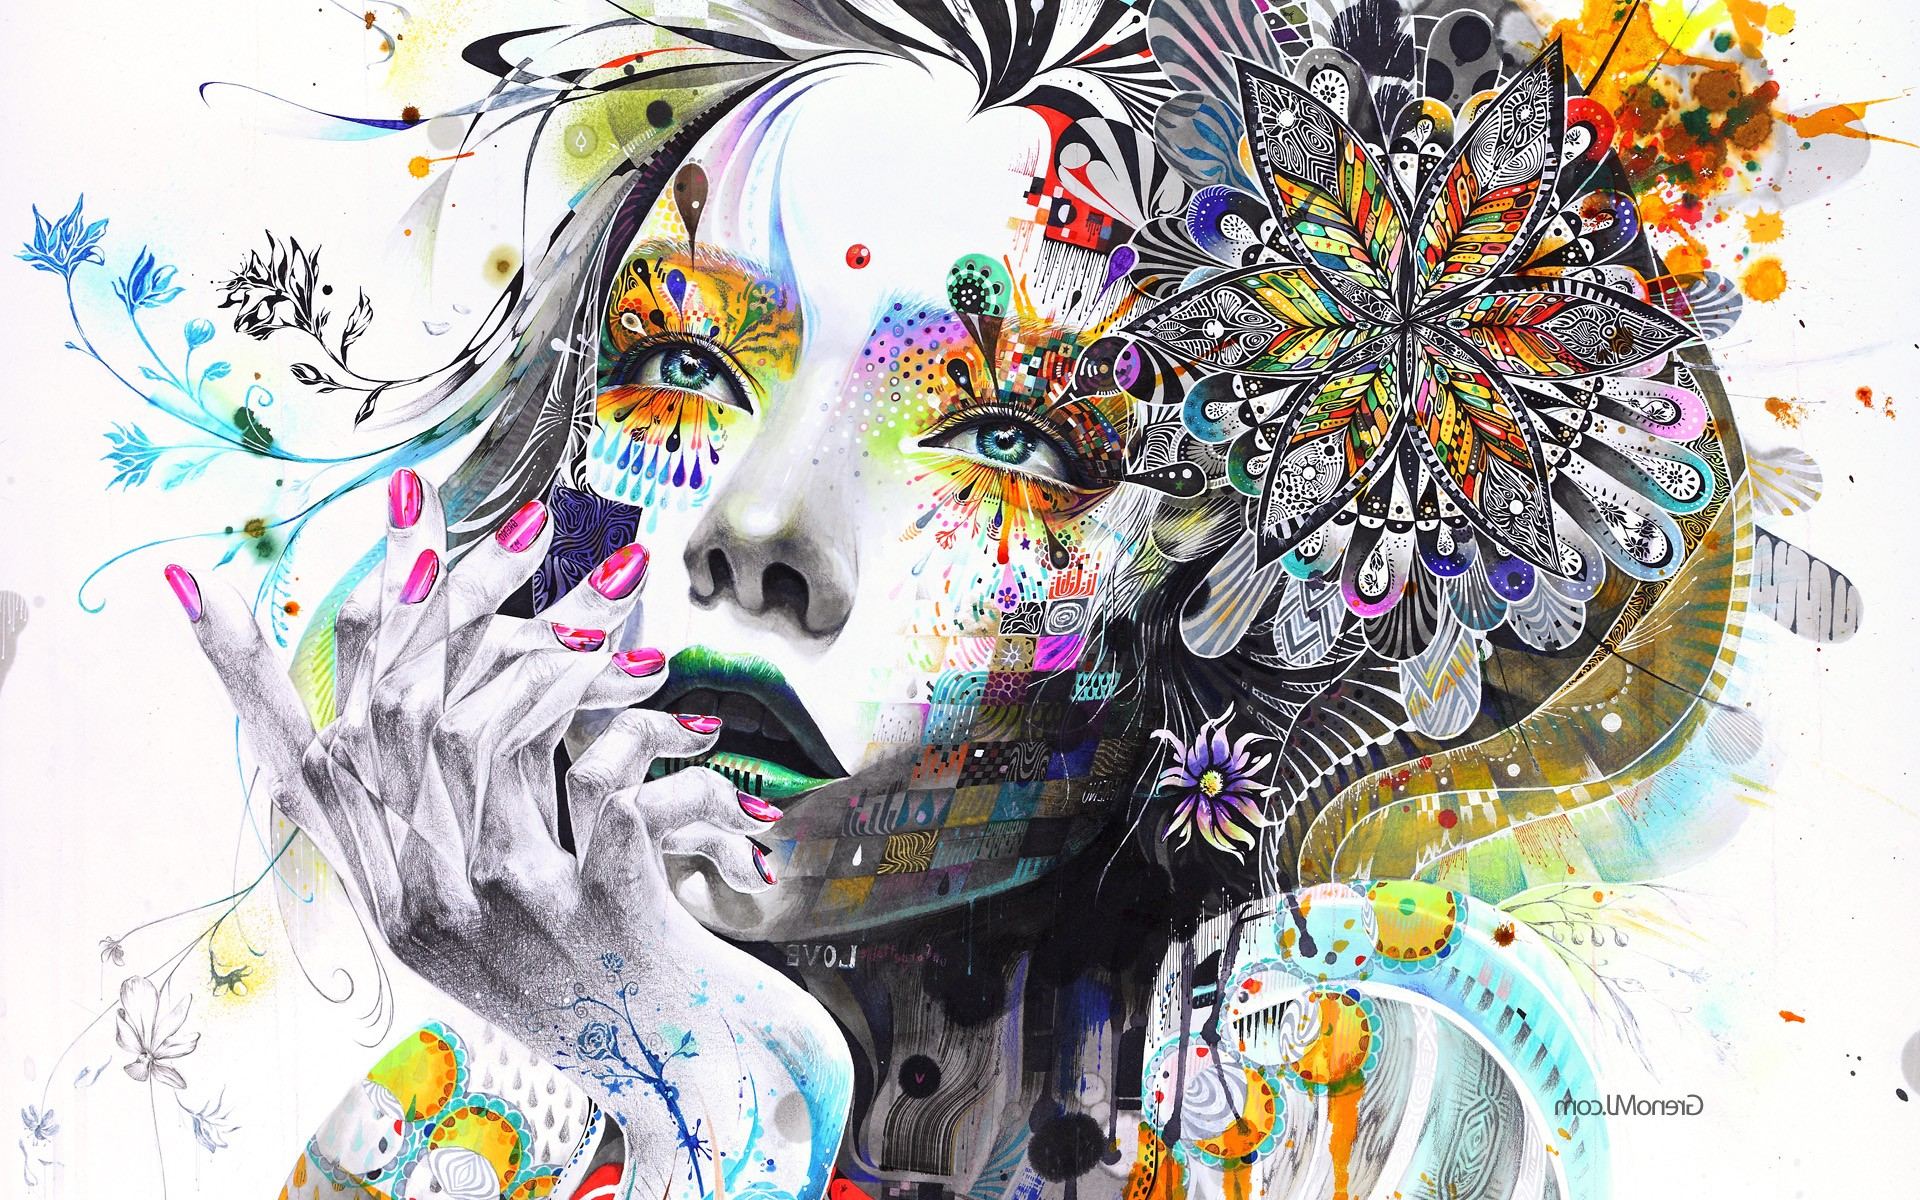 Artwork, Hand, Face, Colorful, Women, Surreal, Mosaic, - Art Woman Flowers , HD Wallpaper & Backgrounds